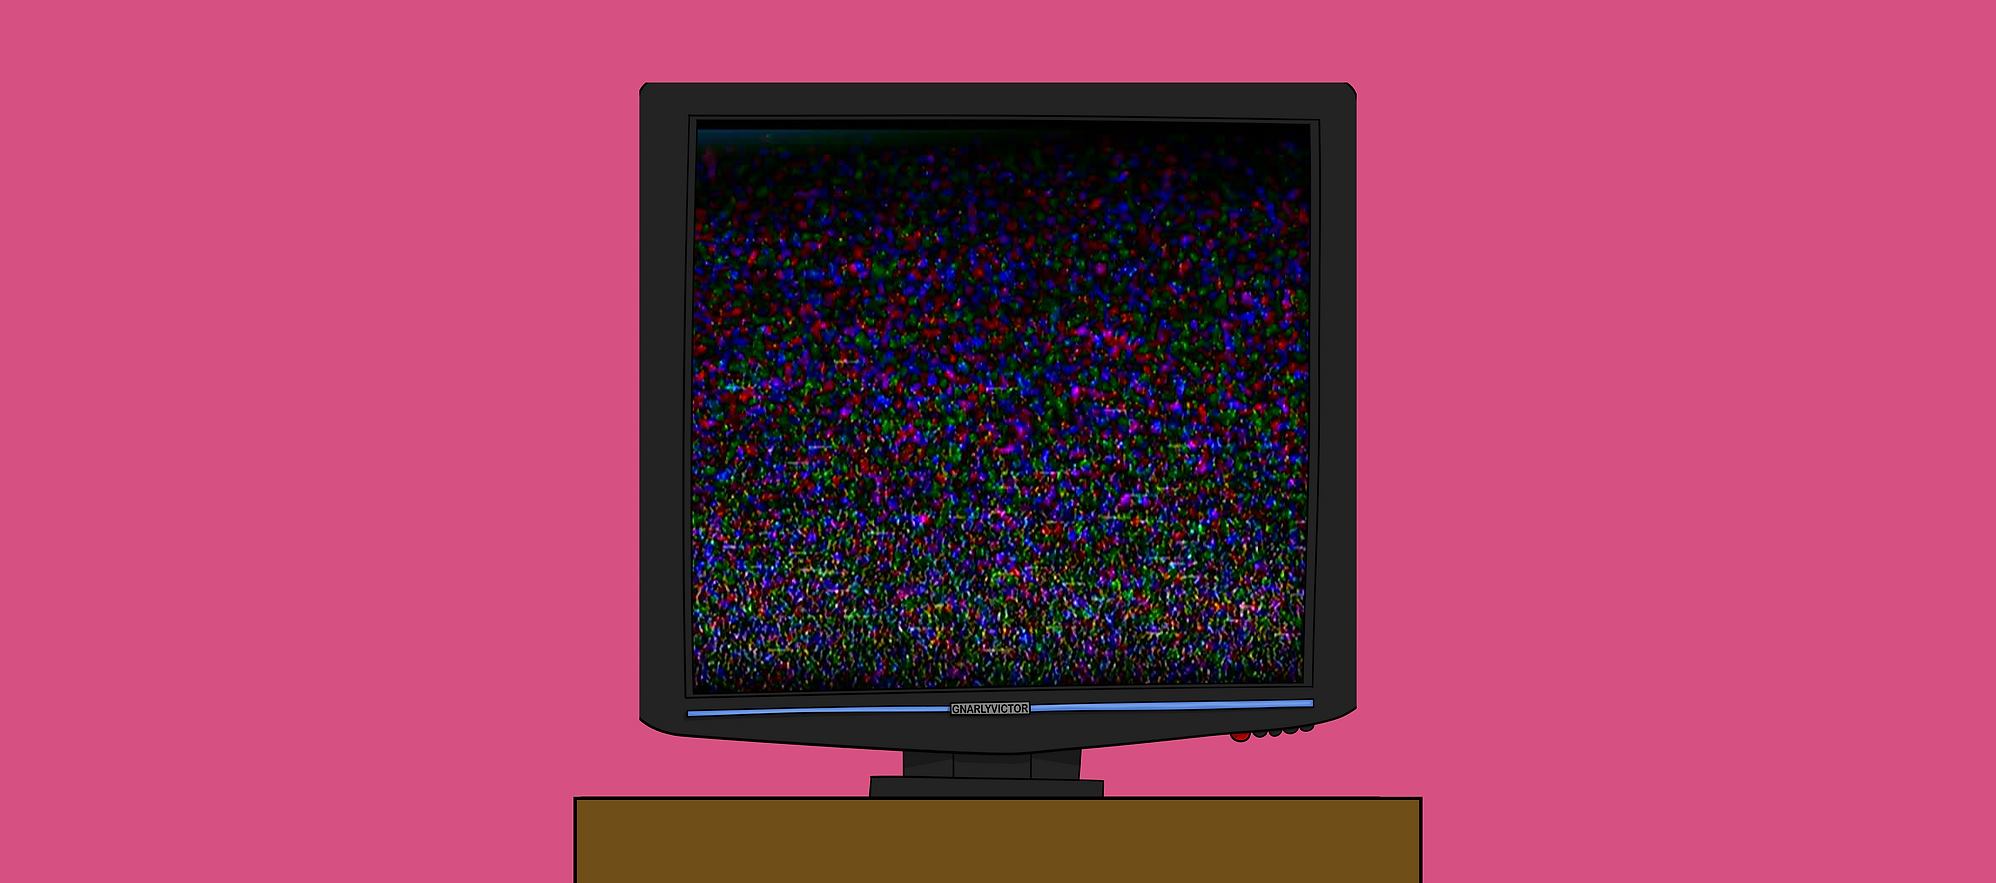 tv 2010.png